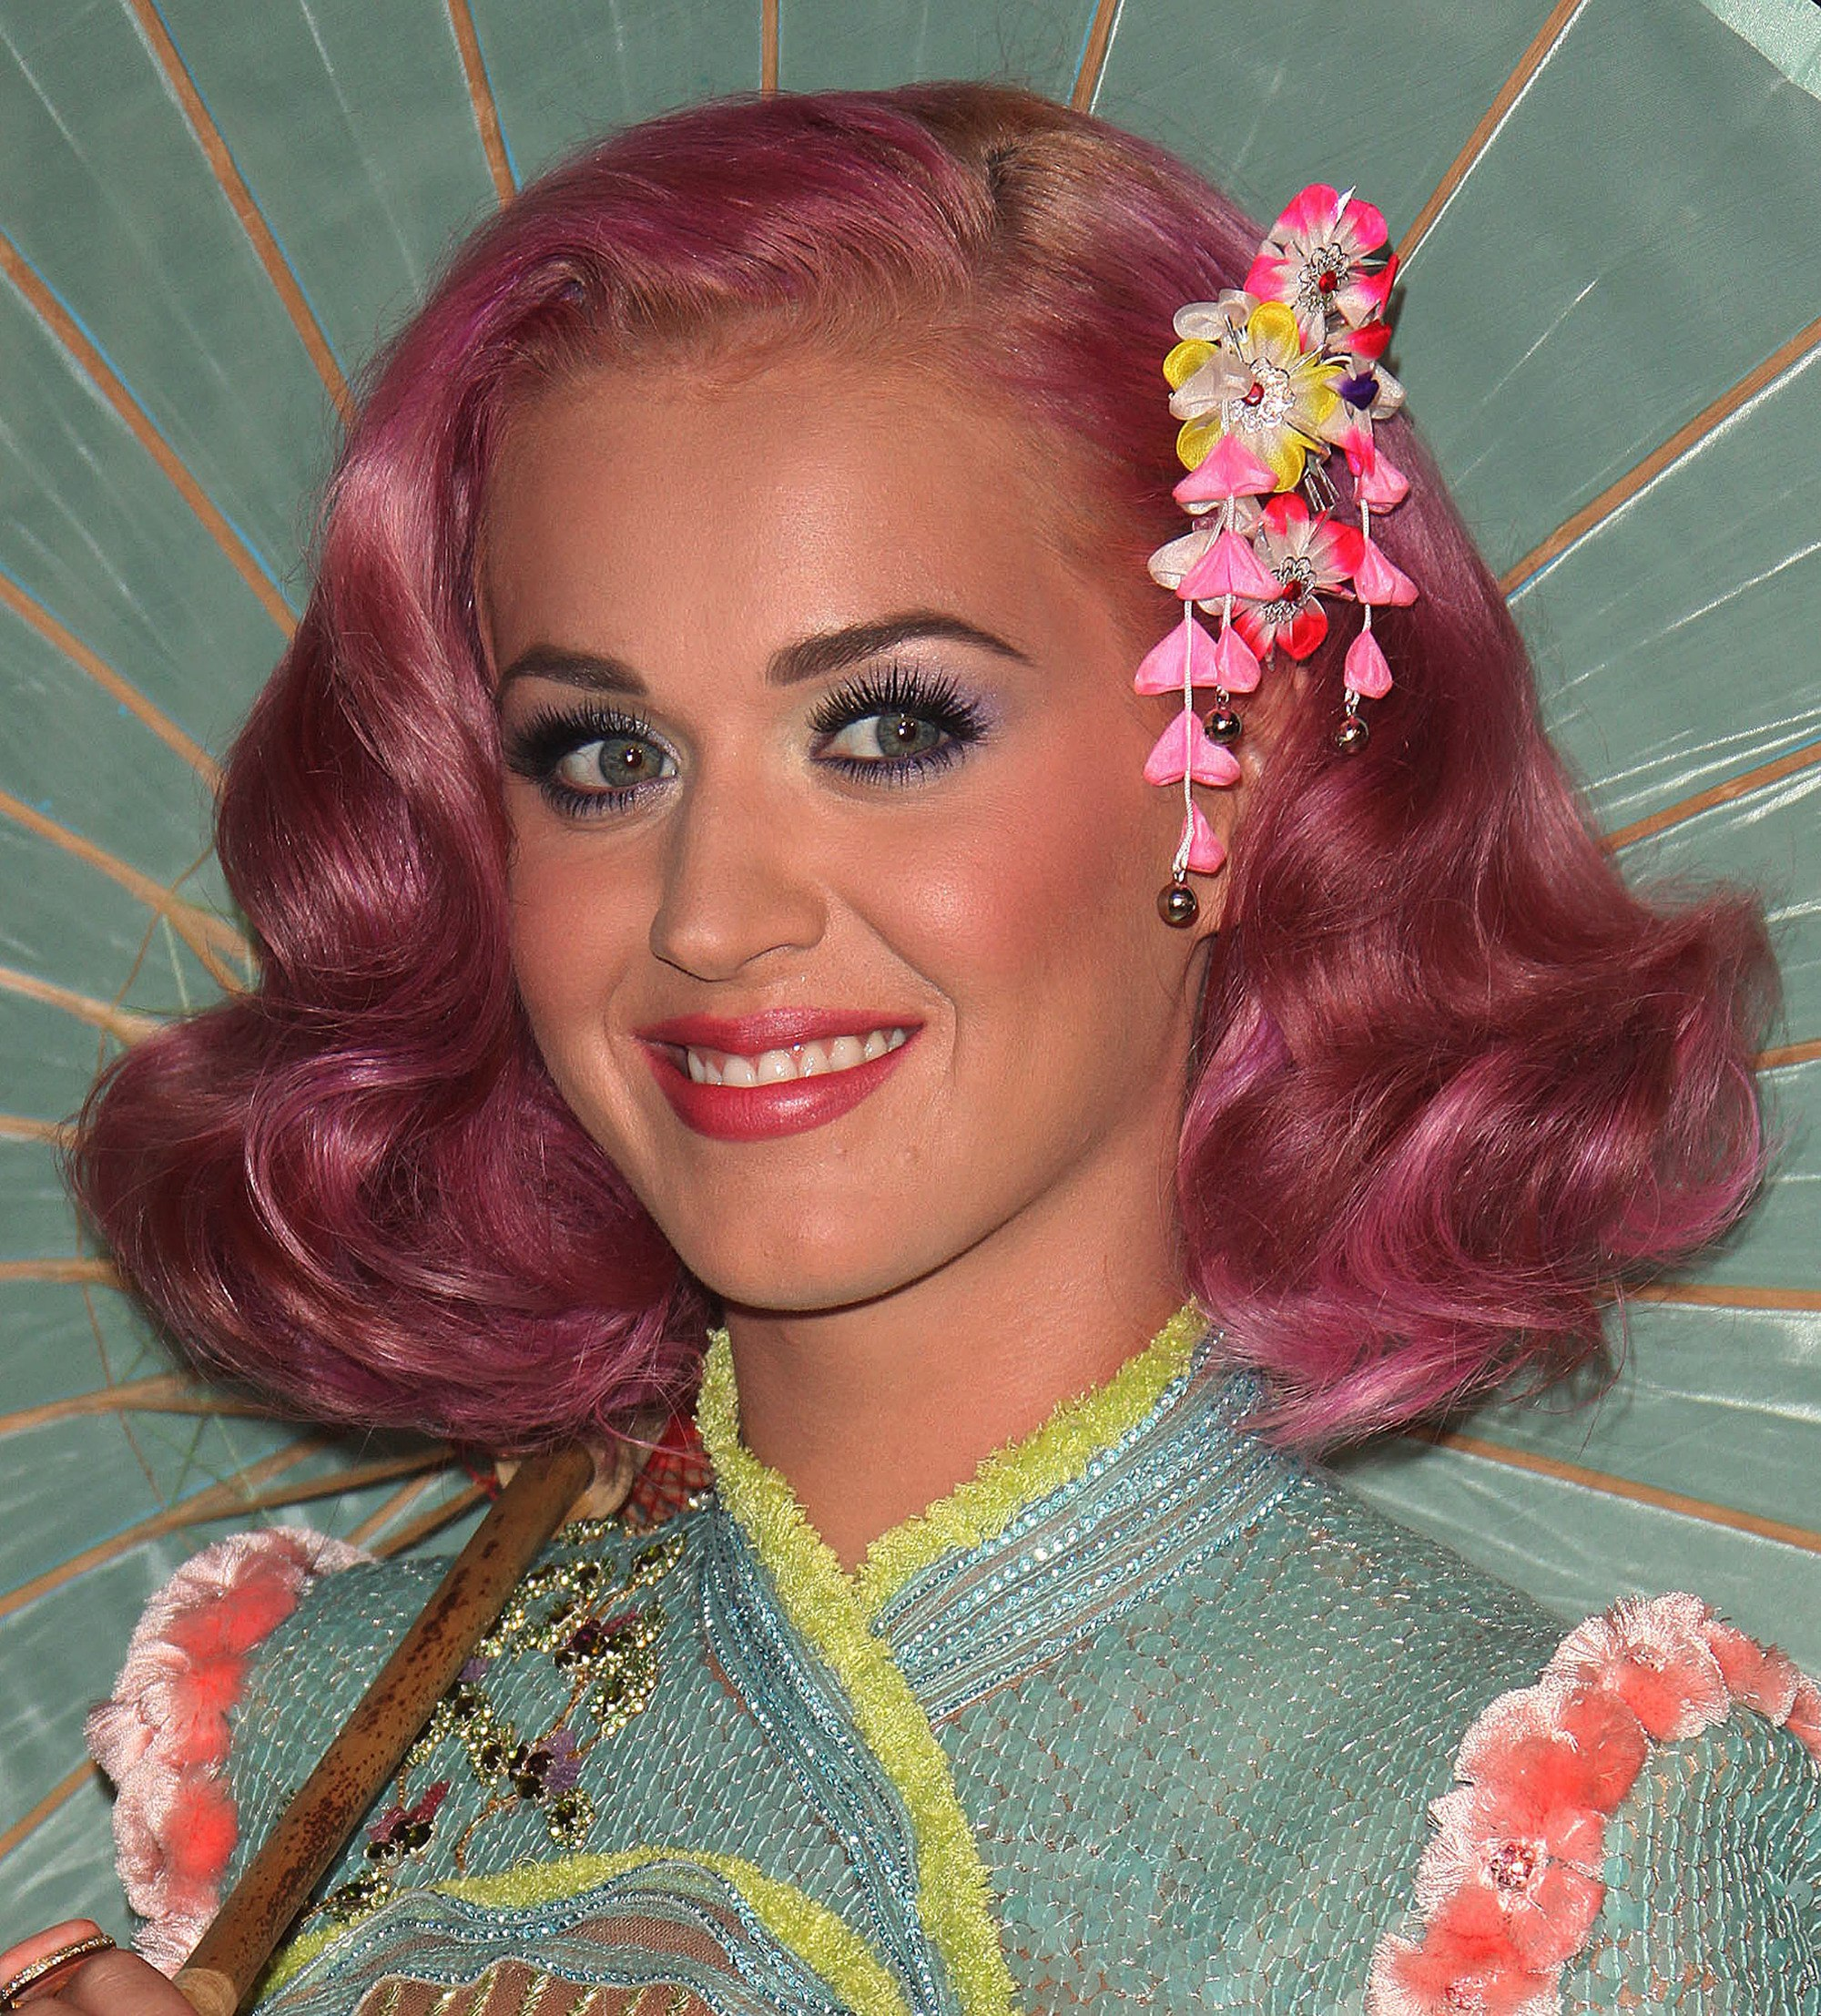 Katry Perry side parting shoulder length pink curly hair with floral accessory